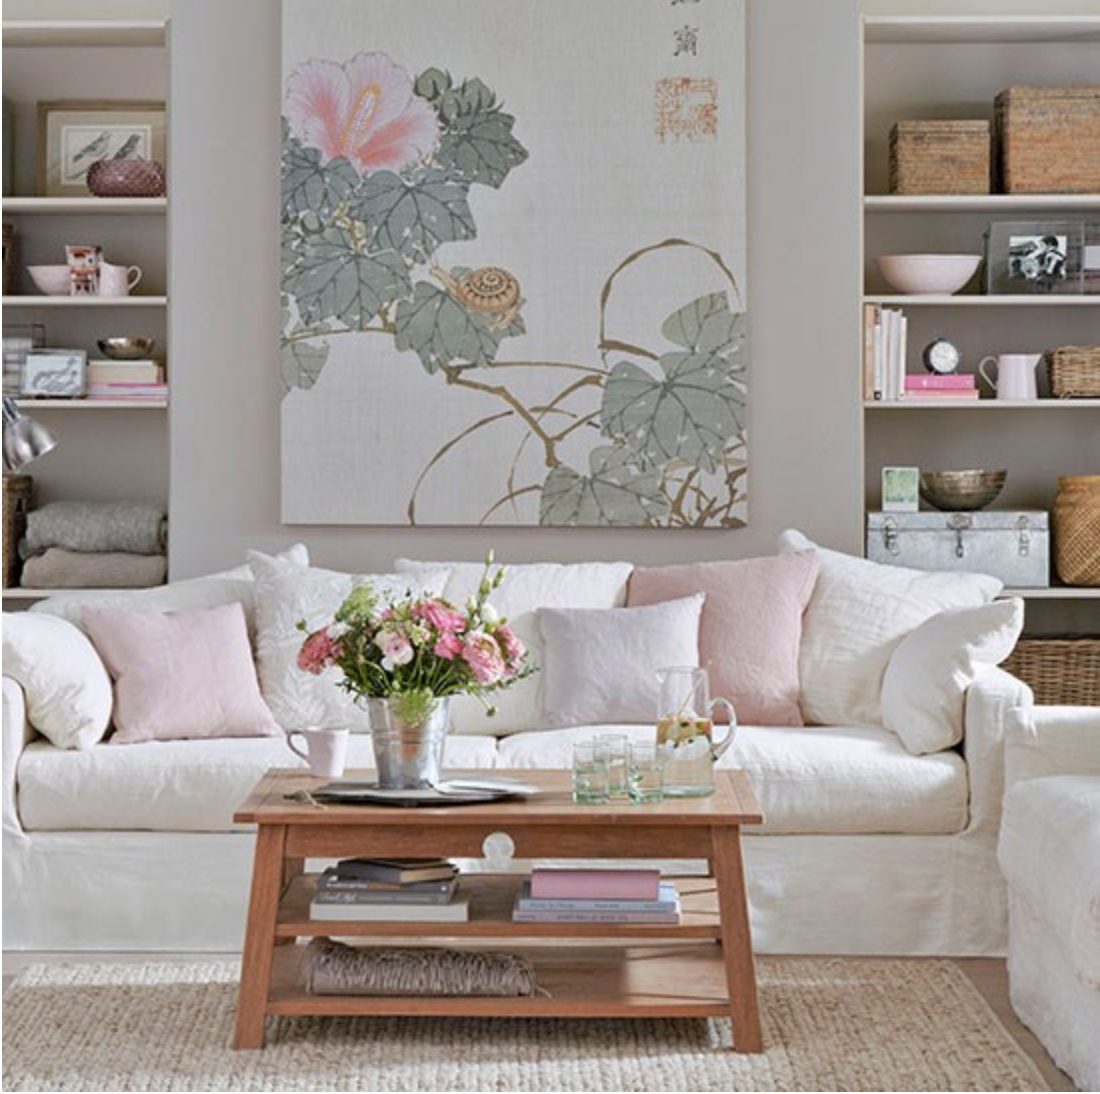 Salas pequenas romanticas e muito charmosas decorandoonline for Grey wallpaper living room ideas